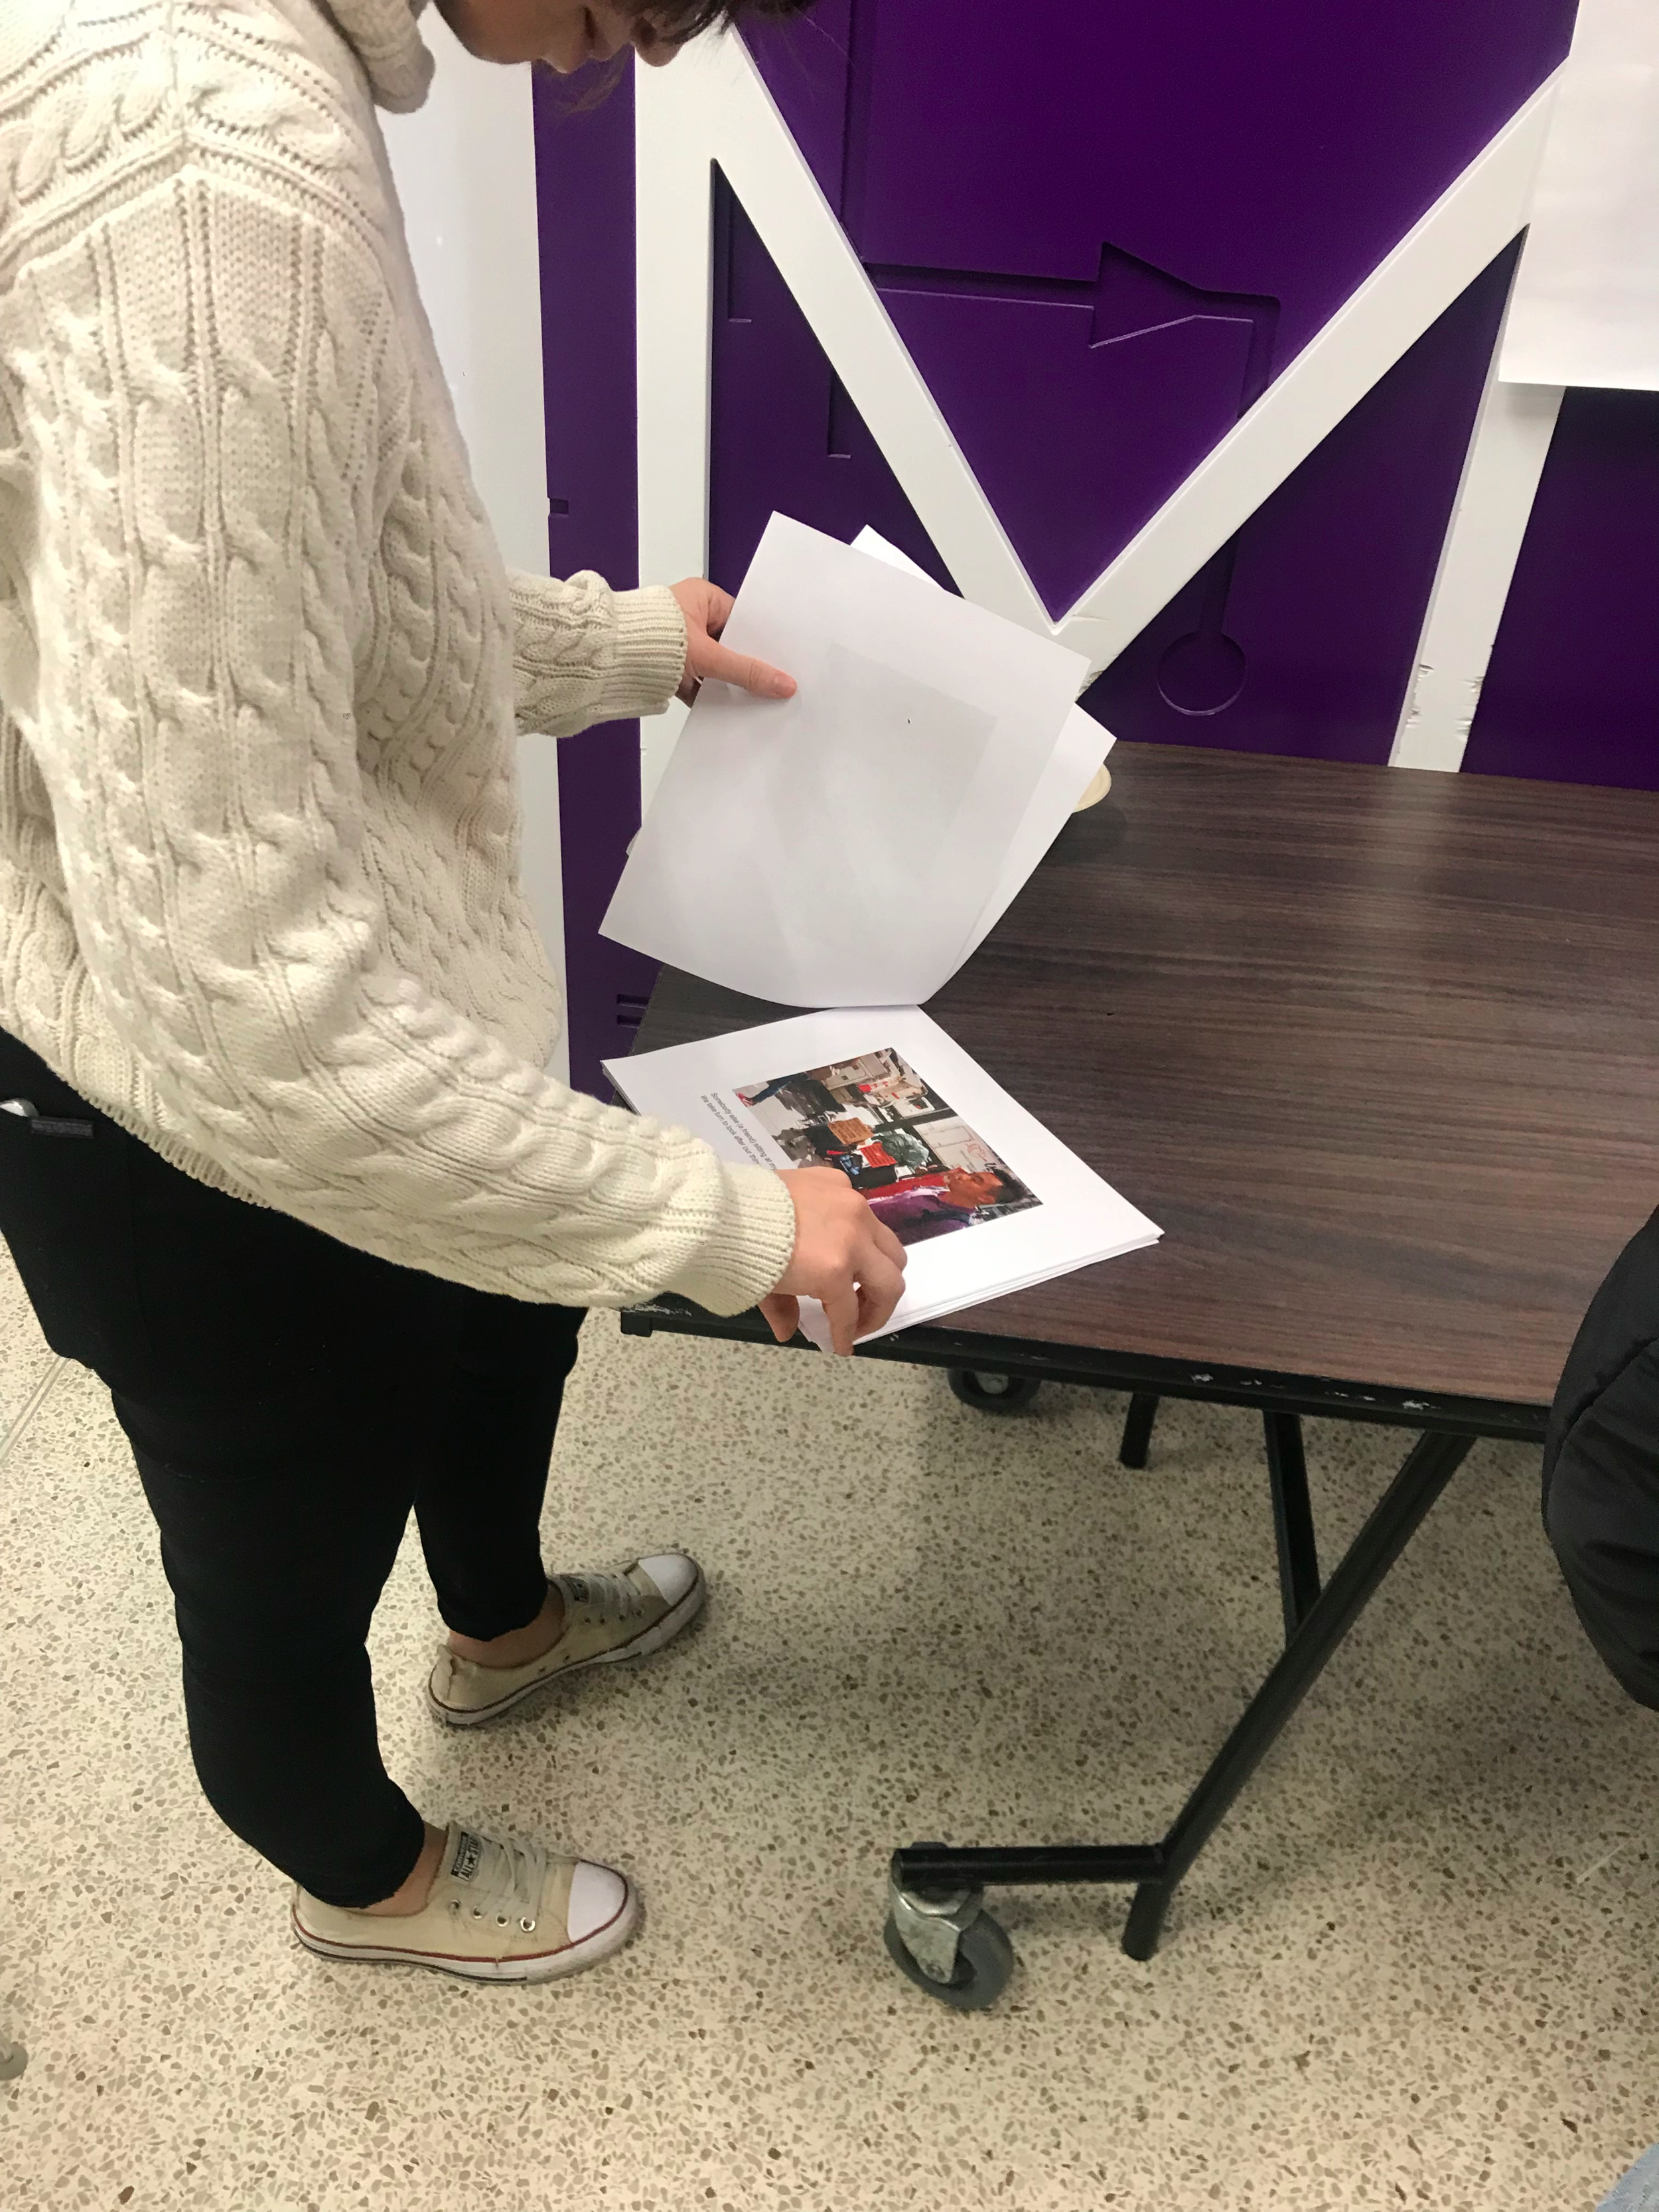 Student_looking_at_photo_book_by_Tabby_homelesswoman1_biographical.png